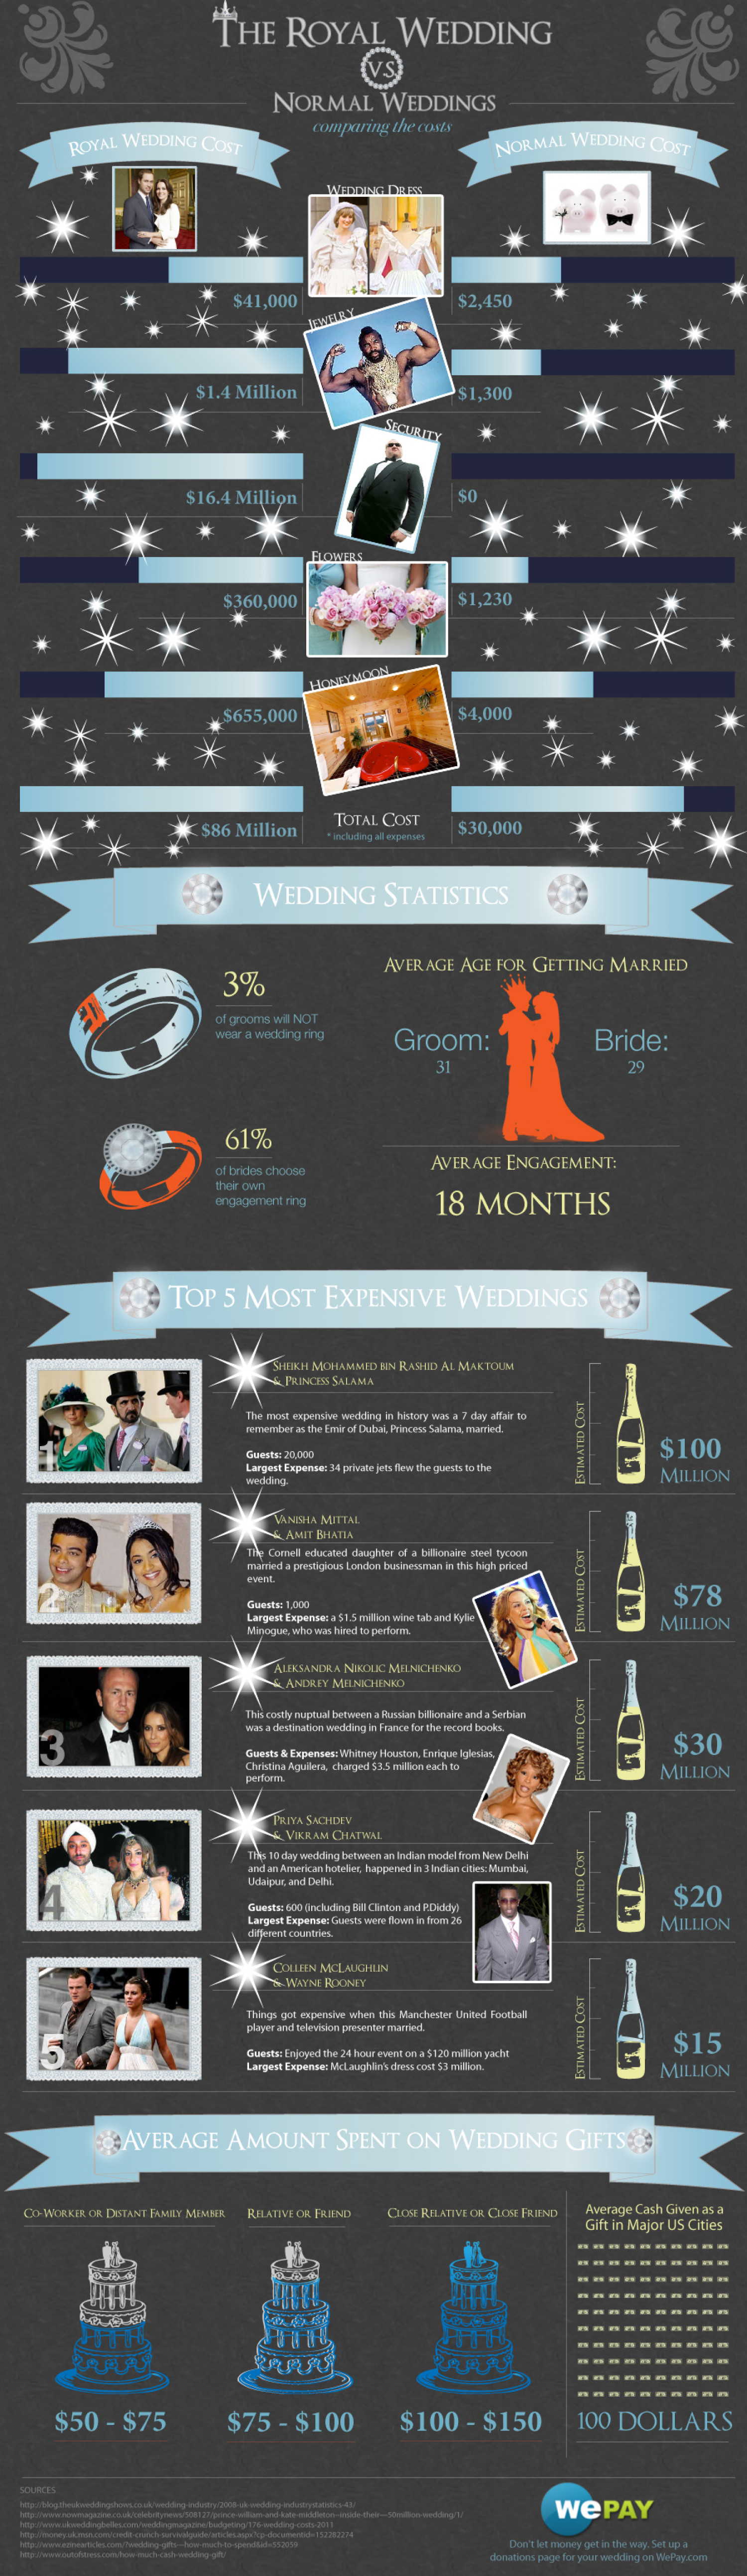 Cost of The Royal Wedding Vs. Your Wedding Infographic